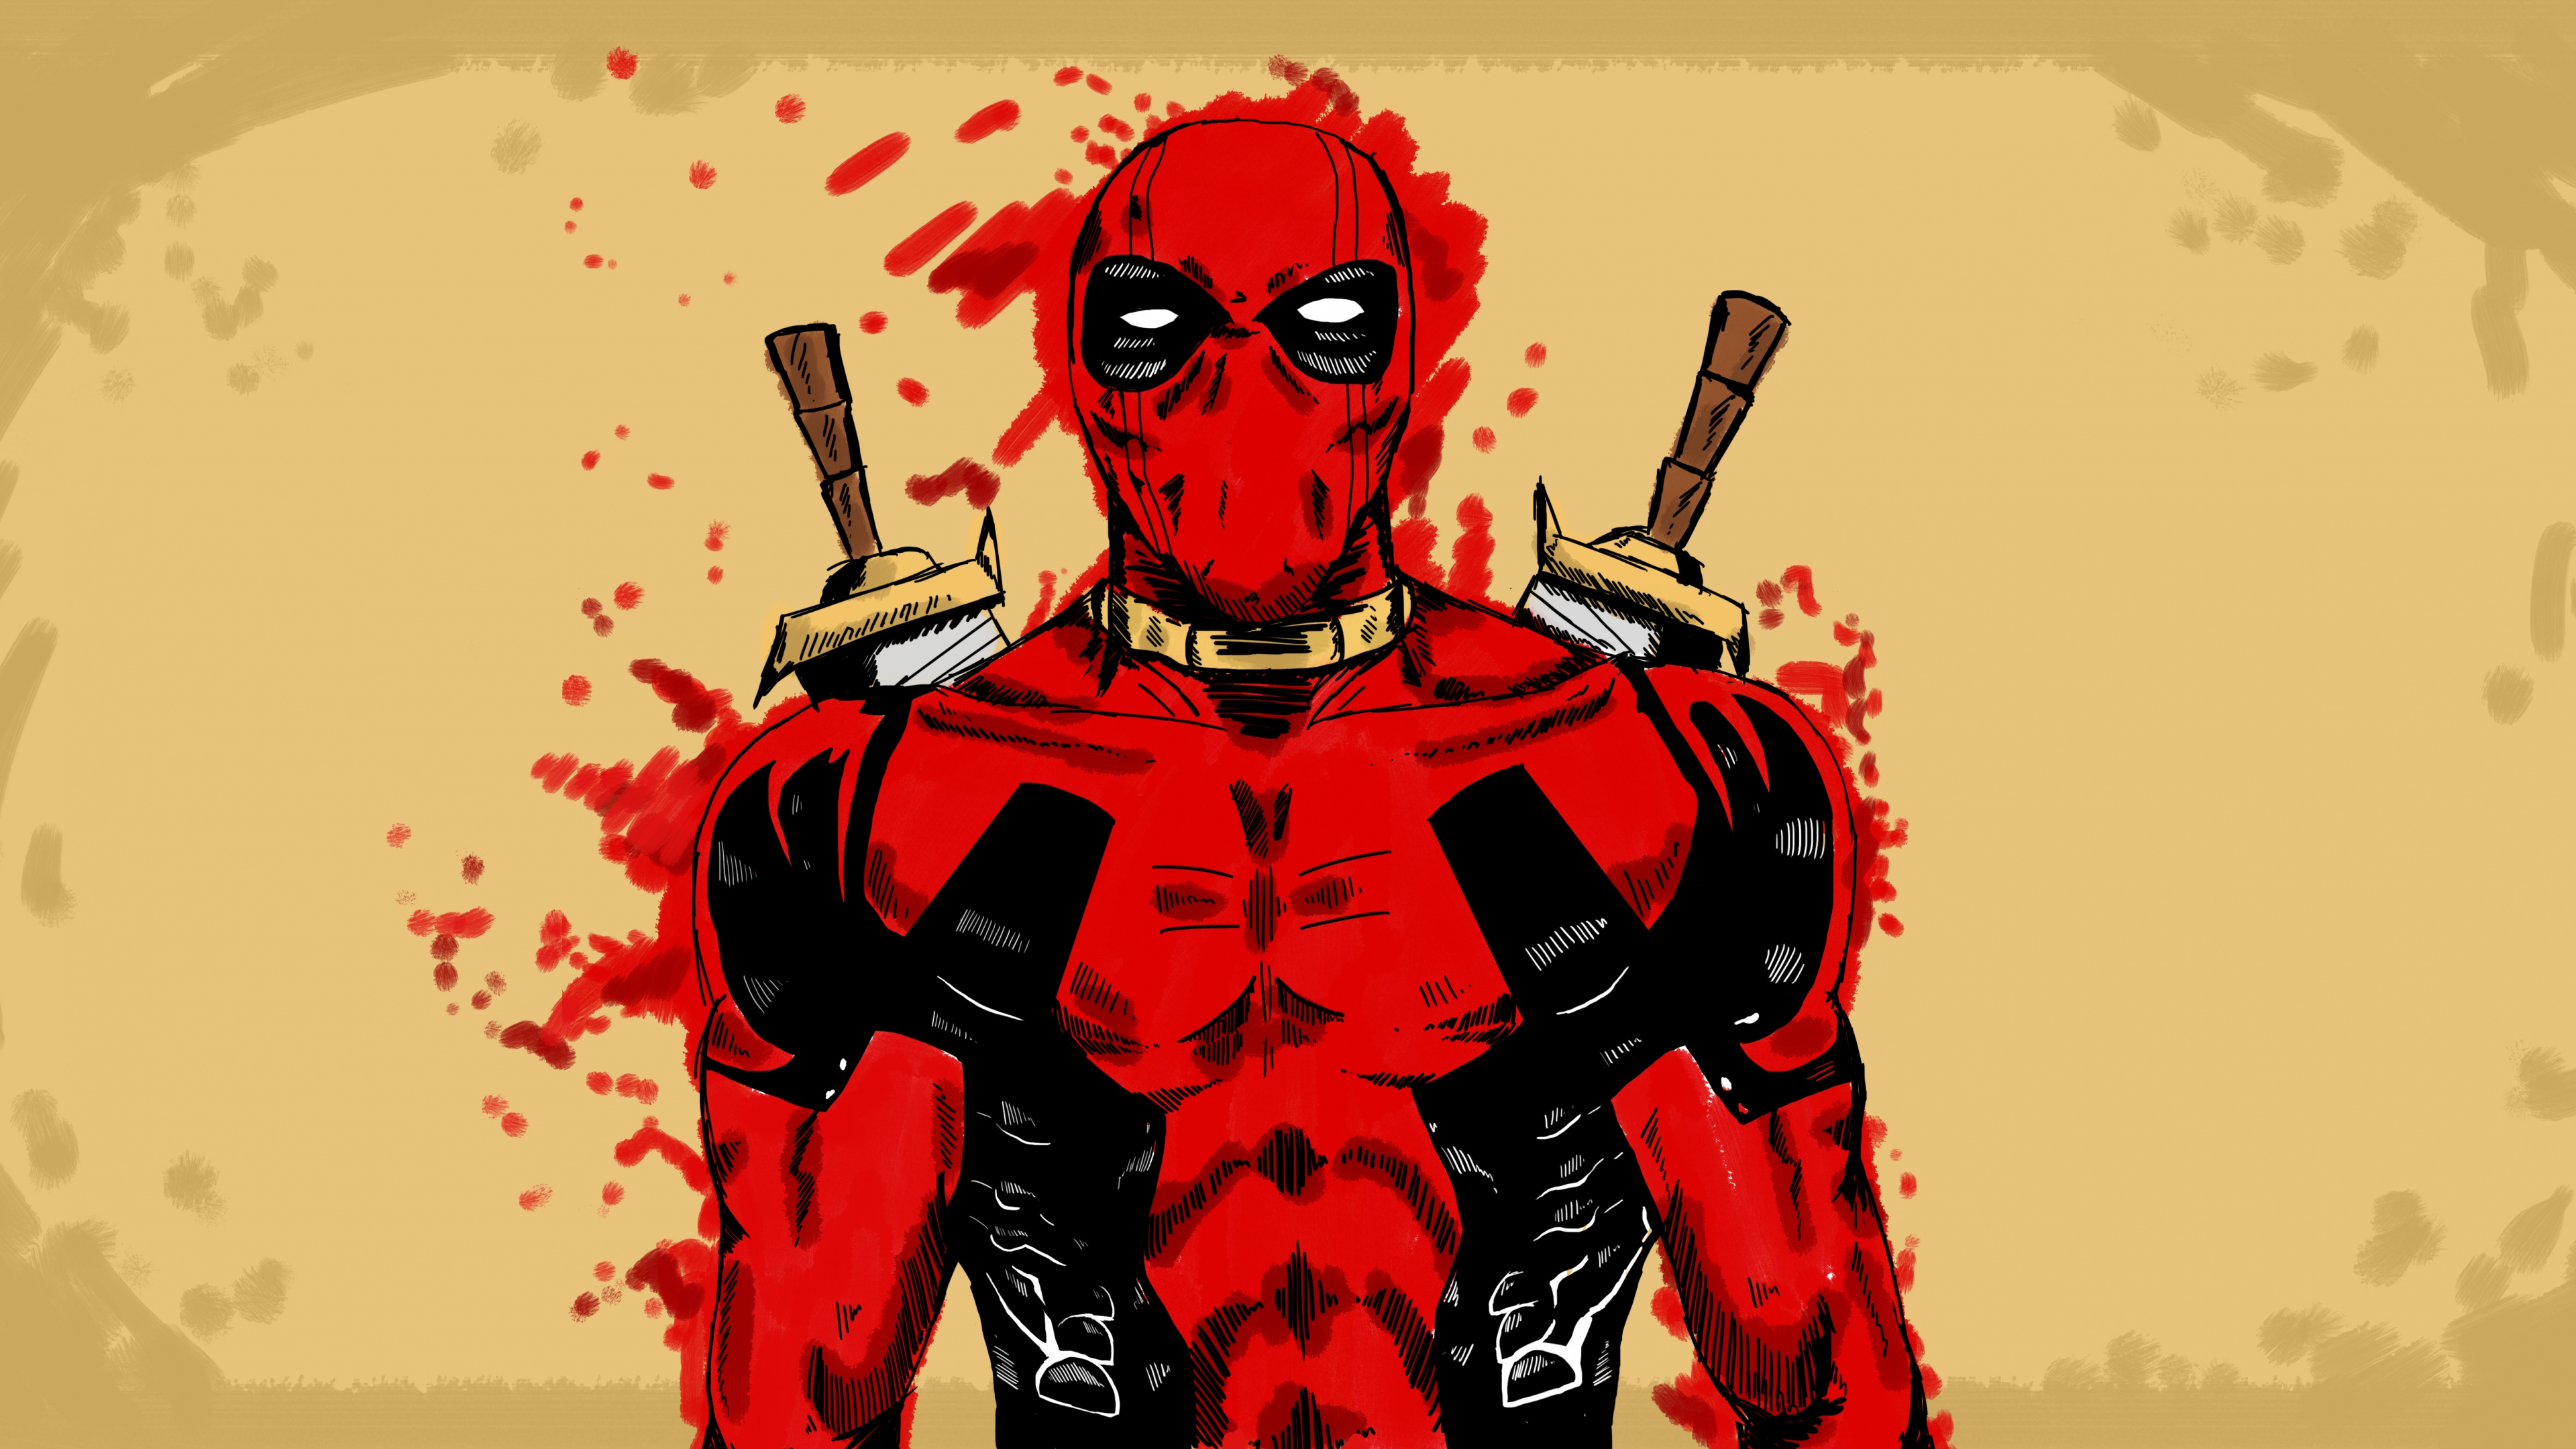 1280x1024 Deadpool Marvel Comic Art 1280x1024 Resolution Hd 4k Wallpapers Images Backgrounds Photos And Pictures